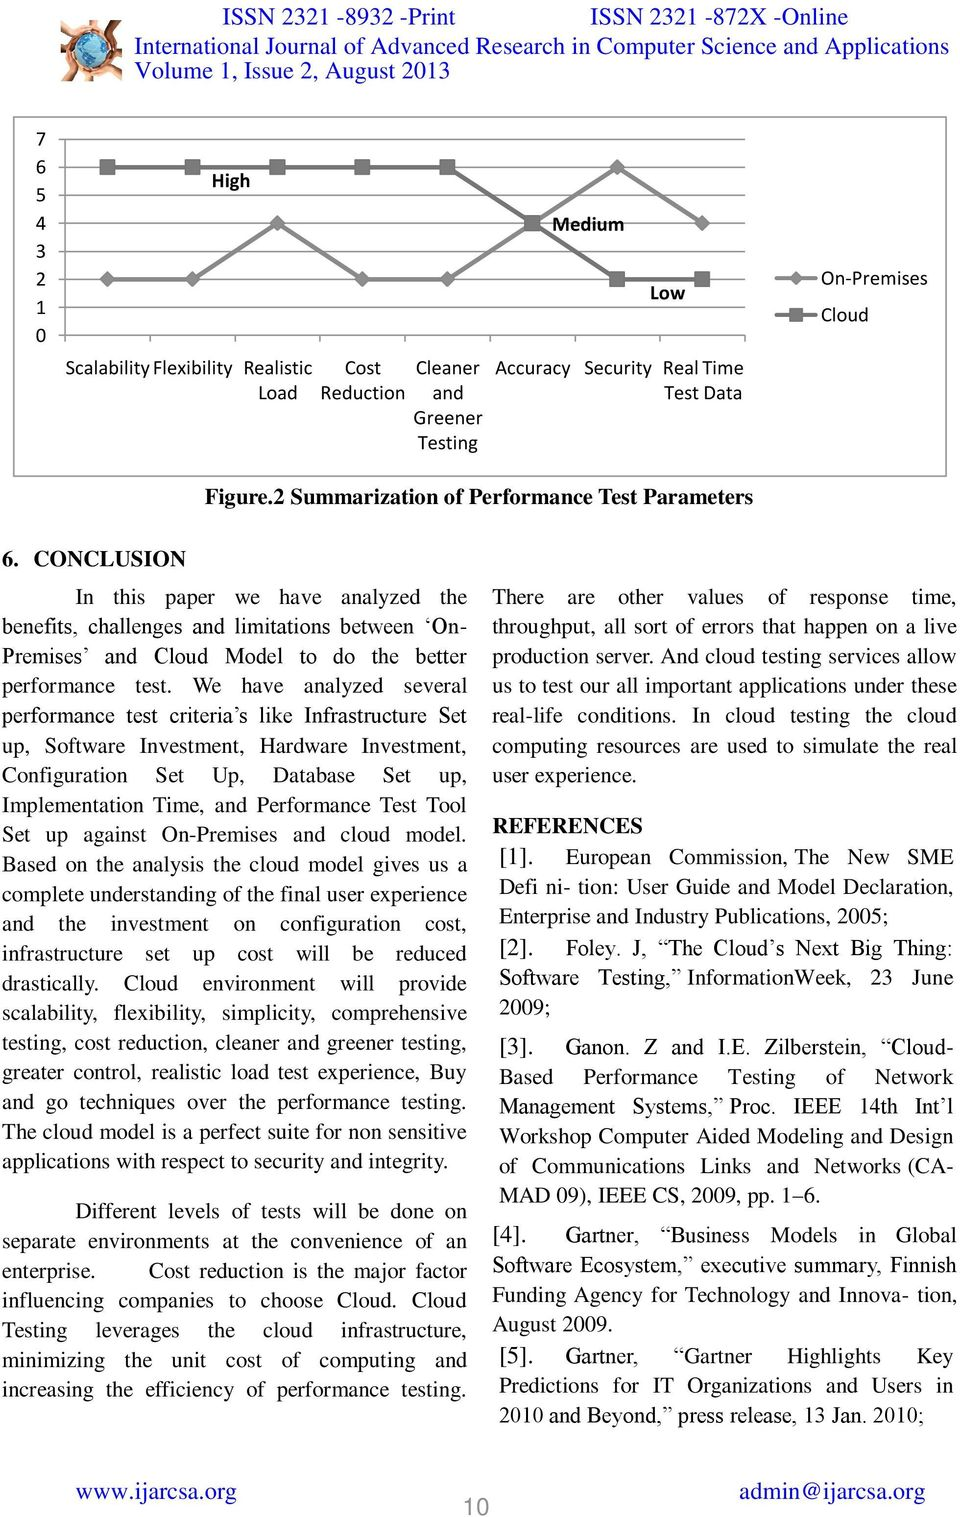 CONCLUSION In this paper we have analyzed the benefits, challenges and limitations between On- Premises and Cloud Model to do the better performance test.